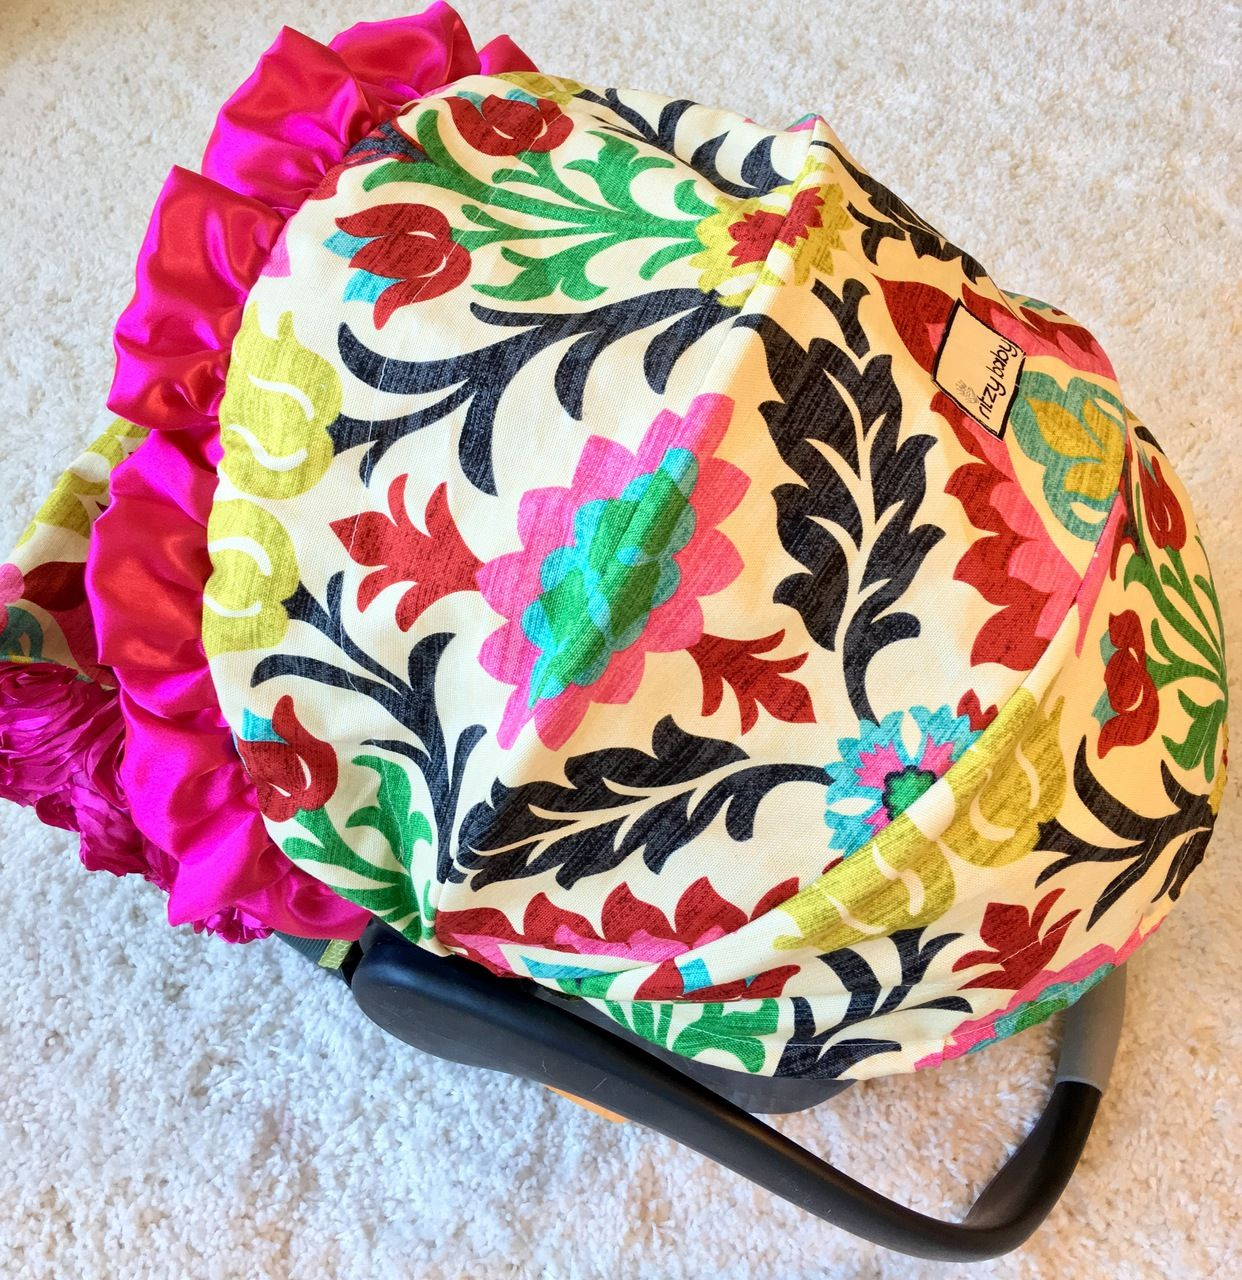 Ritzy Baby Designs, LLC - Santa Maria Damask and Hot Pink Roses Infant Car Seat Cover, $125.00 (http://www.ritzybaby.com/santa-maria-damask-and-hot-pink-roses-infant-car-seat-cover/)